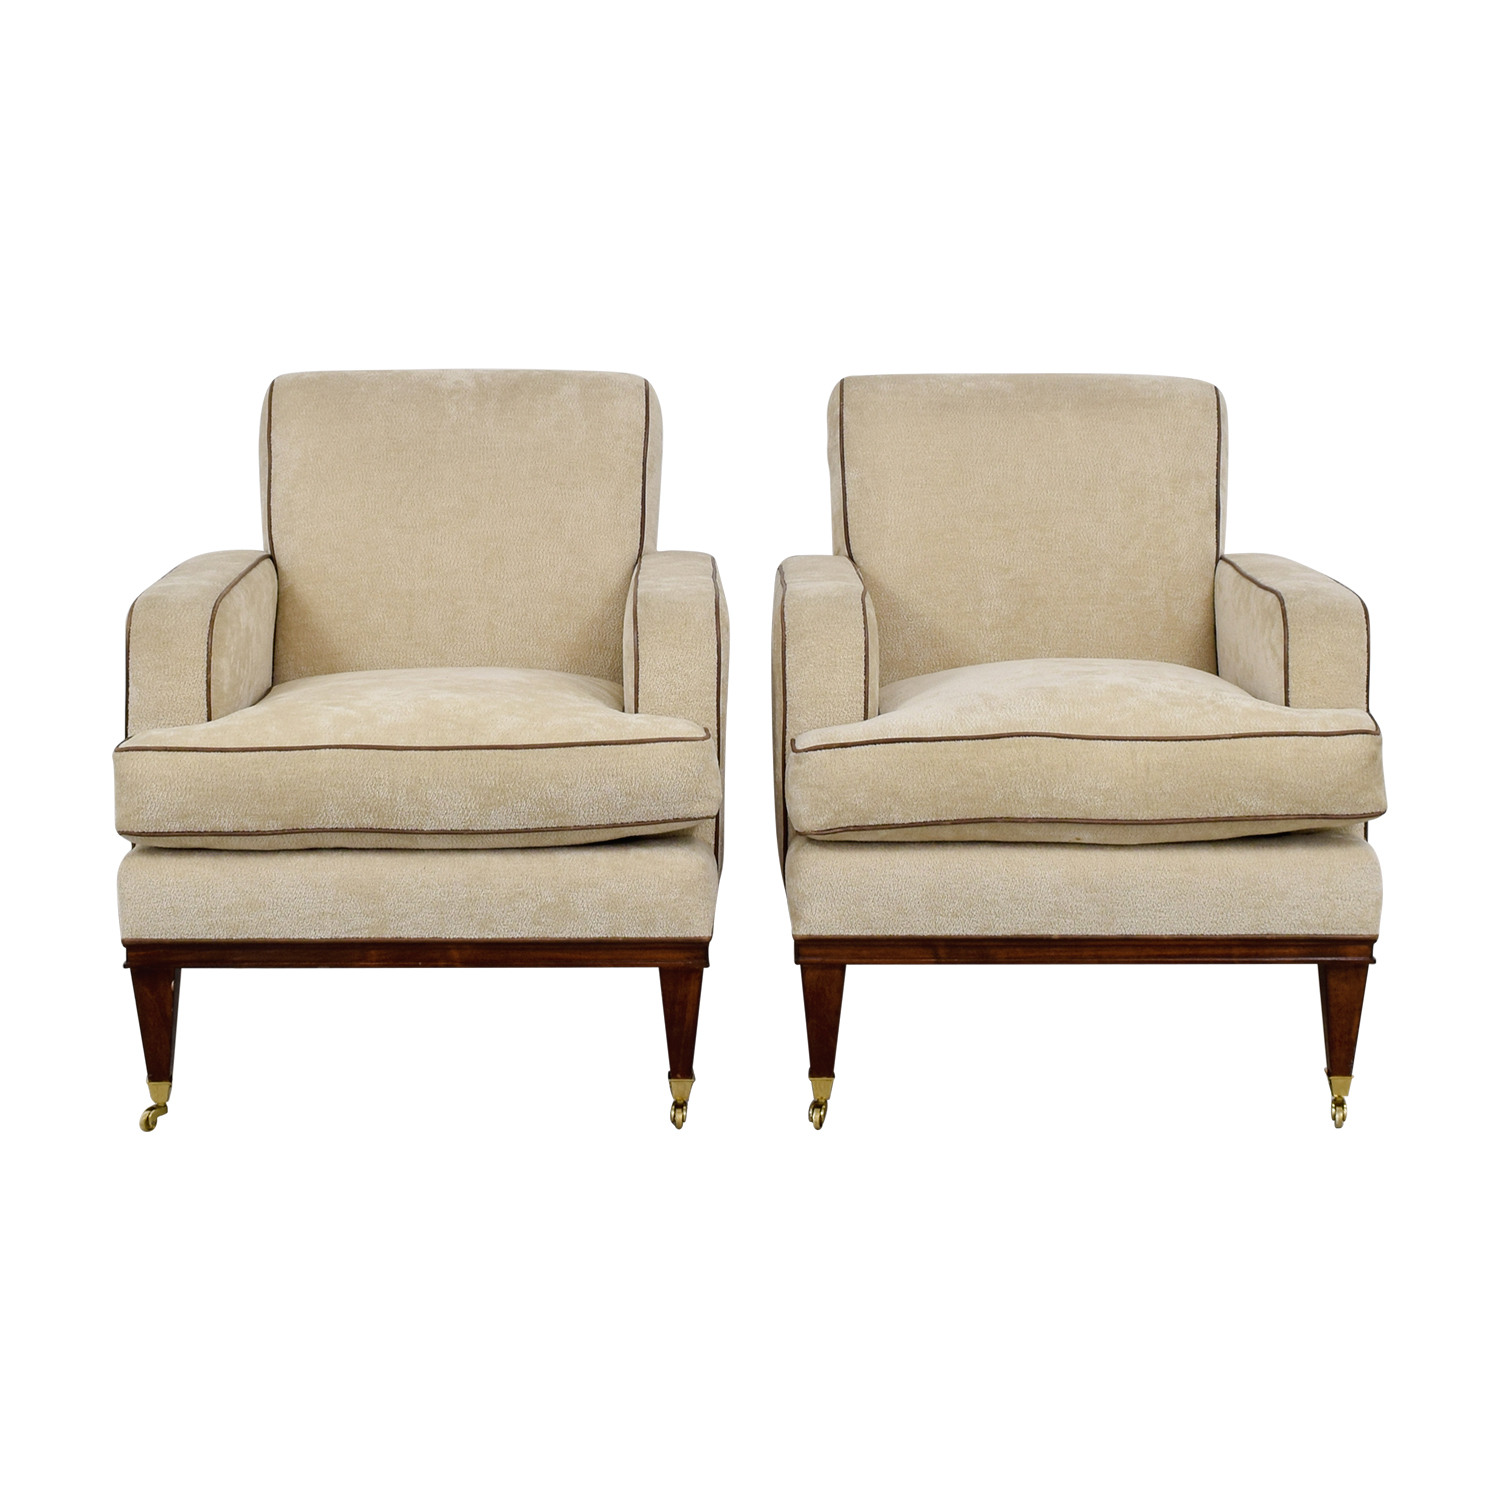 Furniture Masters Furniture Masters Beige Club Chairs on Castors for sale